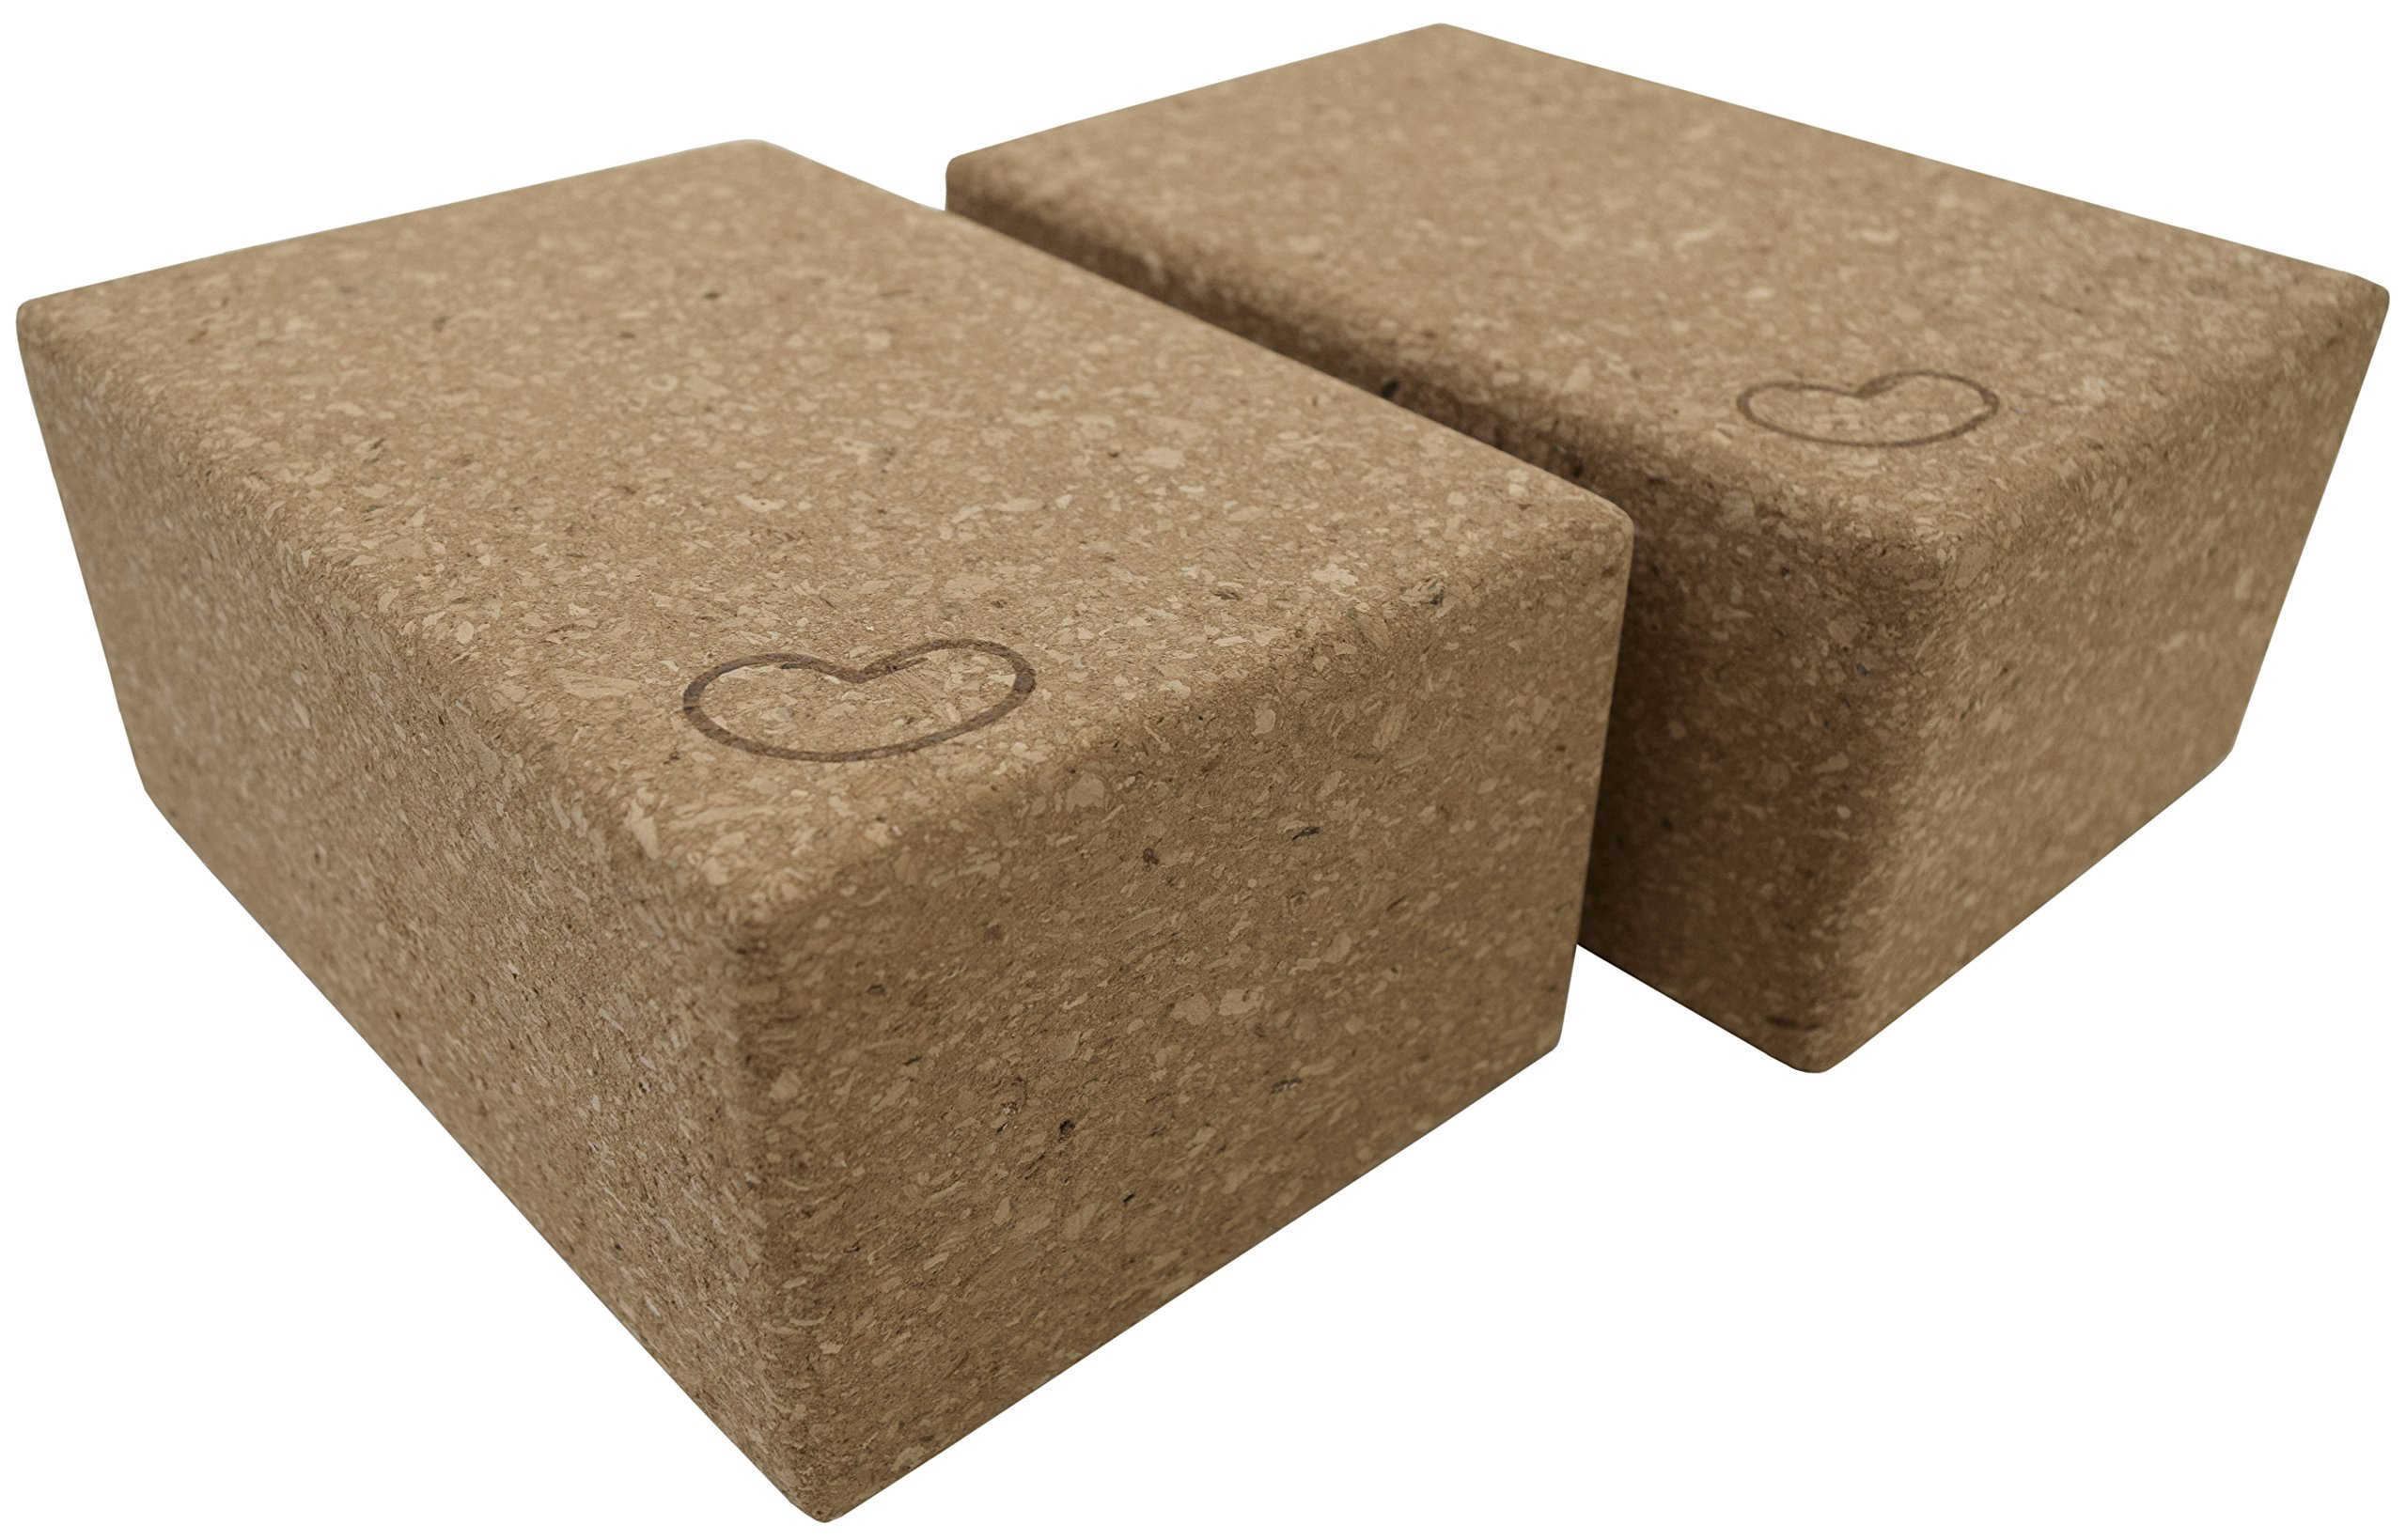 Bean Products Eco Yoga Cork Blocks - Pair - 4 in x 6 in x 9 in - Large Size by Bean Products